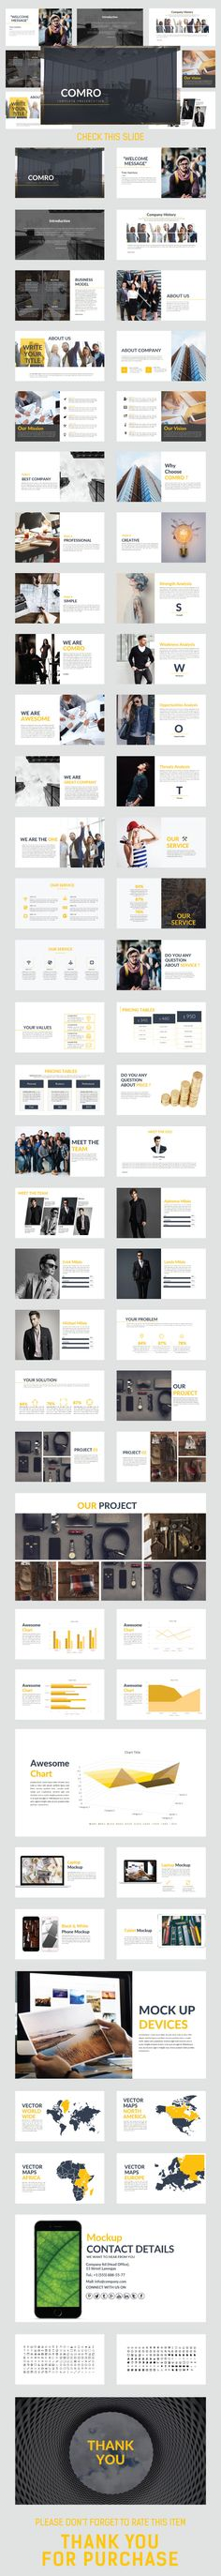 COMRO #Keynote Template - Business Keynote #Templates Download here: https://graphicriver.net/item/comro-keynote-template/19577676?ref=alena994